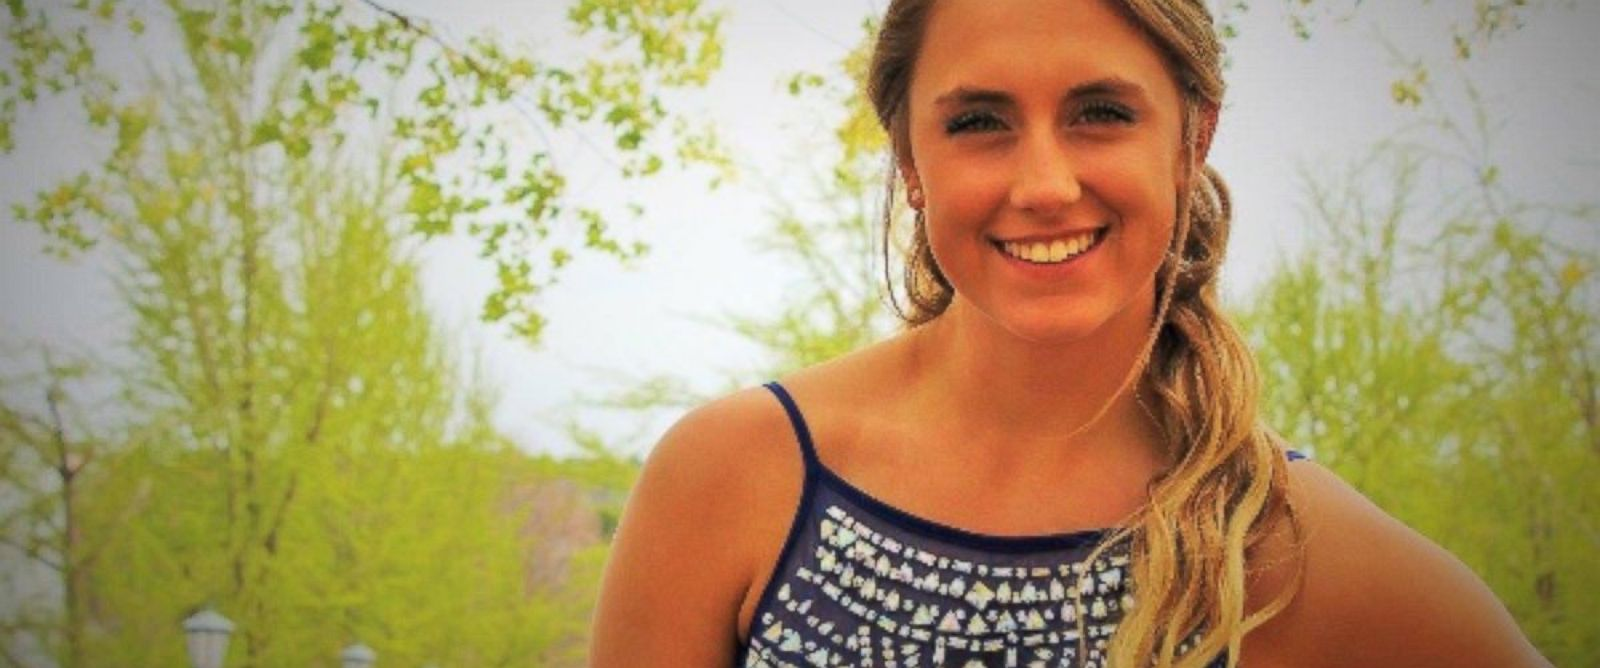 PHOTO: Emma Aronson died unexpectedly after swimming with friends.